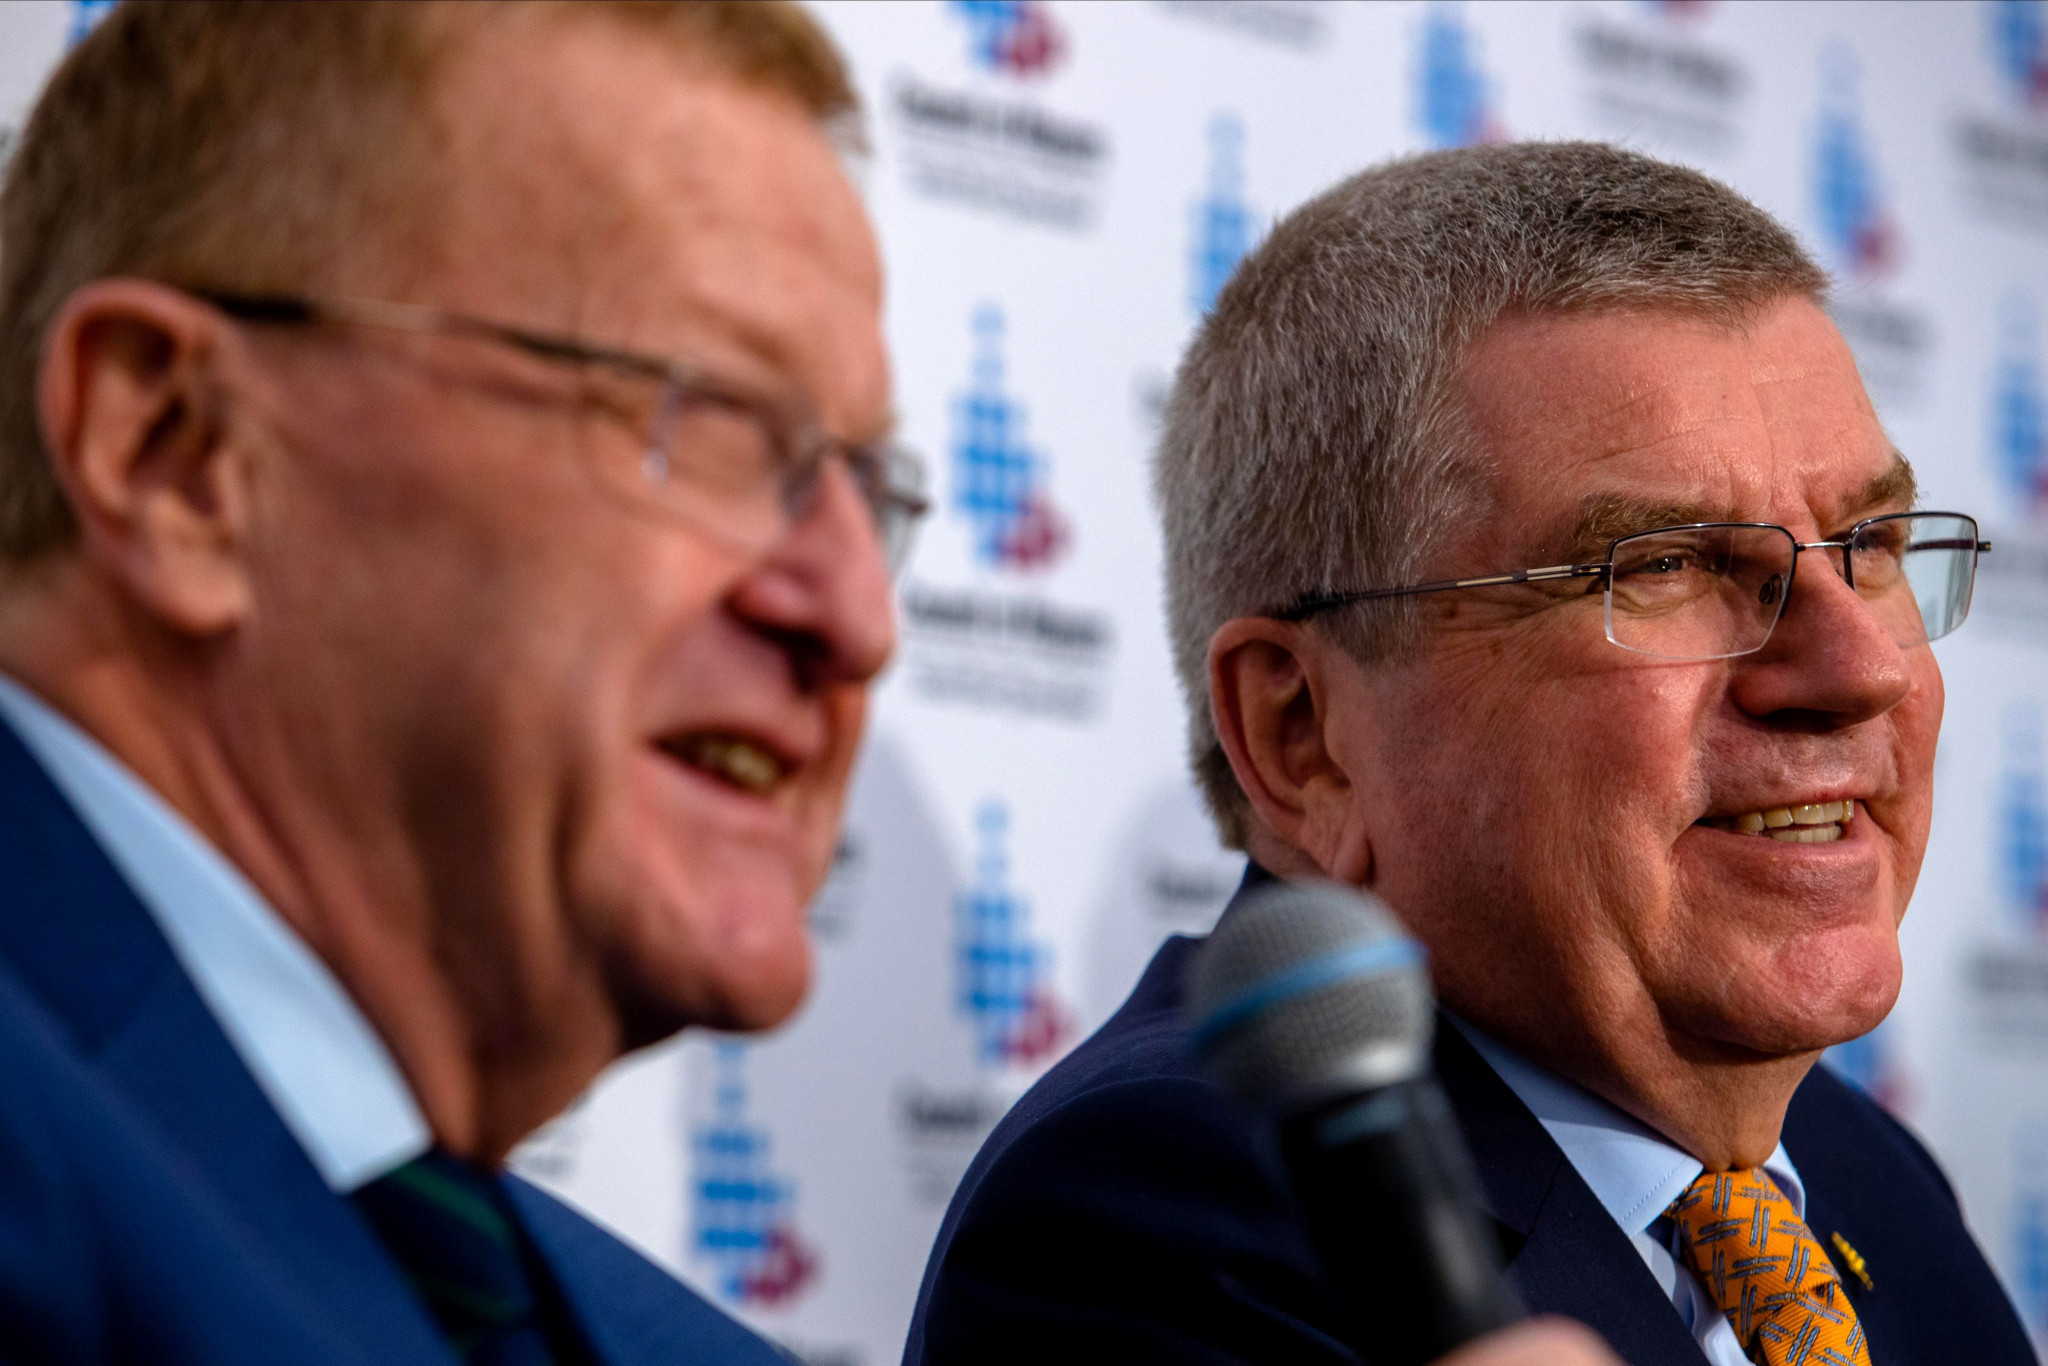 John Coates, chair of the working group looking at changes to the bidding process, said the 2032 host could be announced at next year's Session ©Getty Images